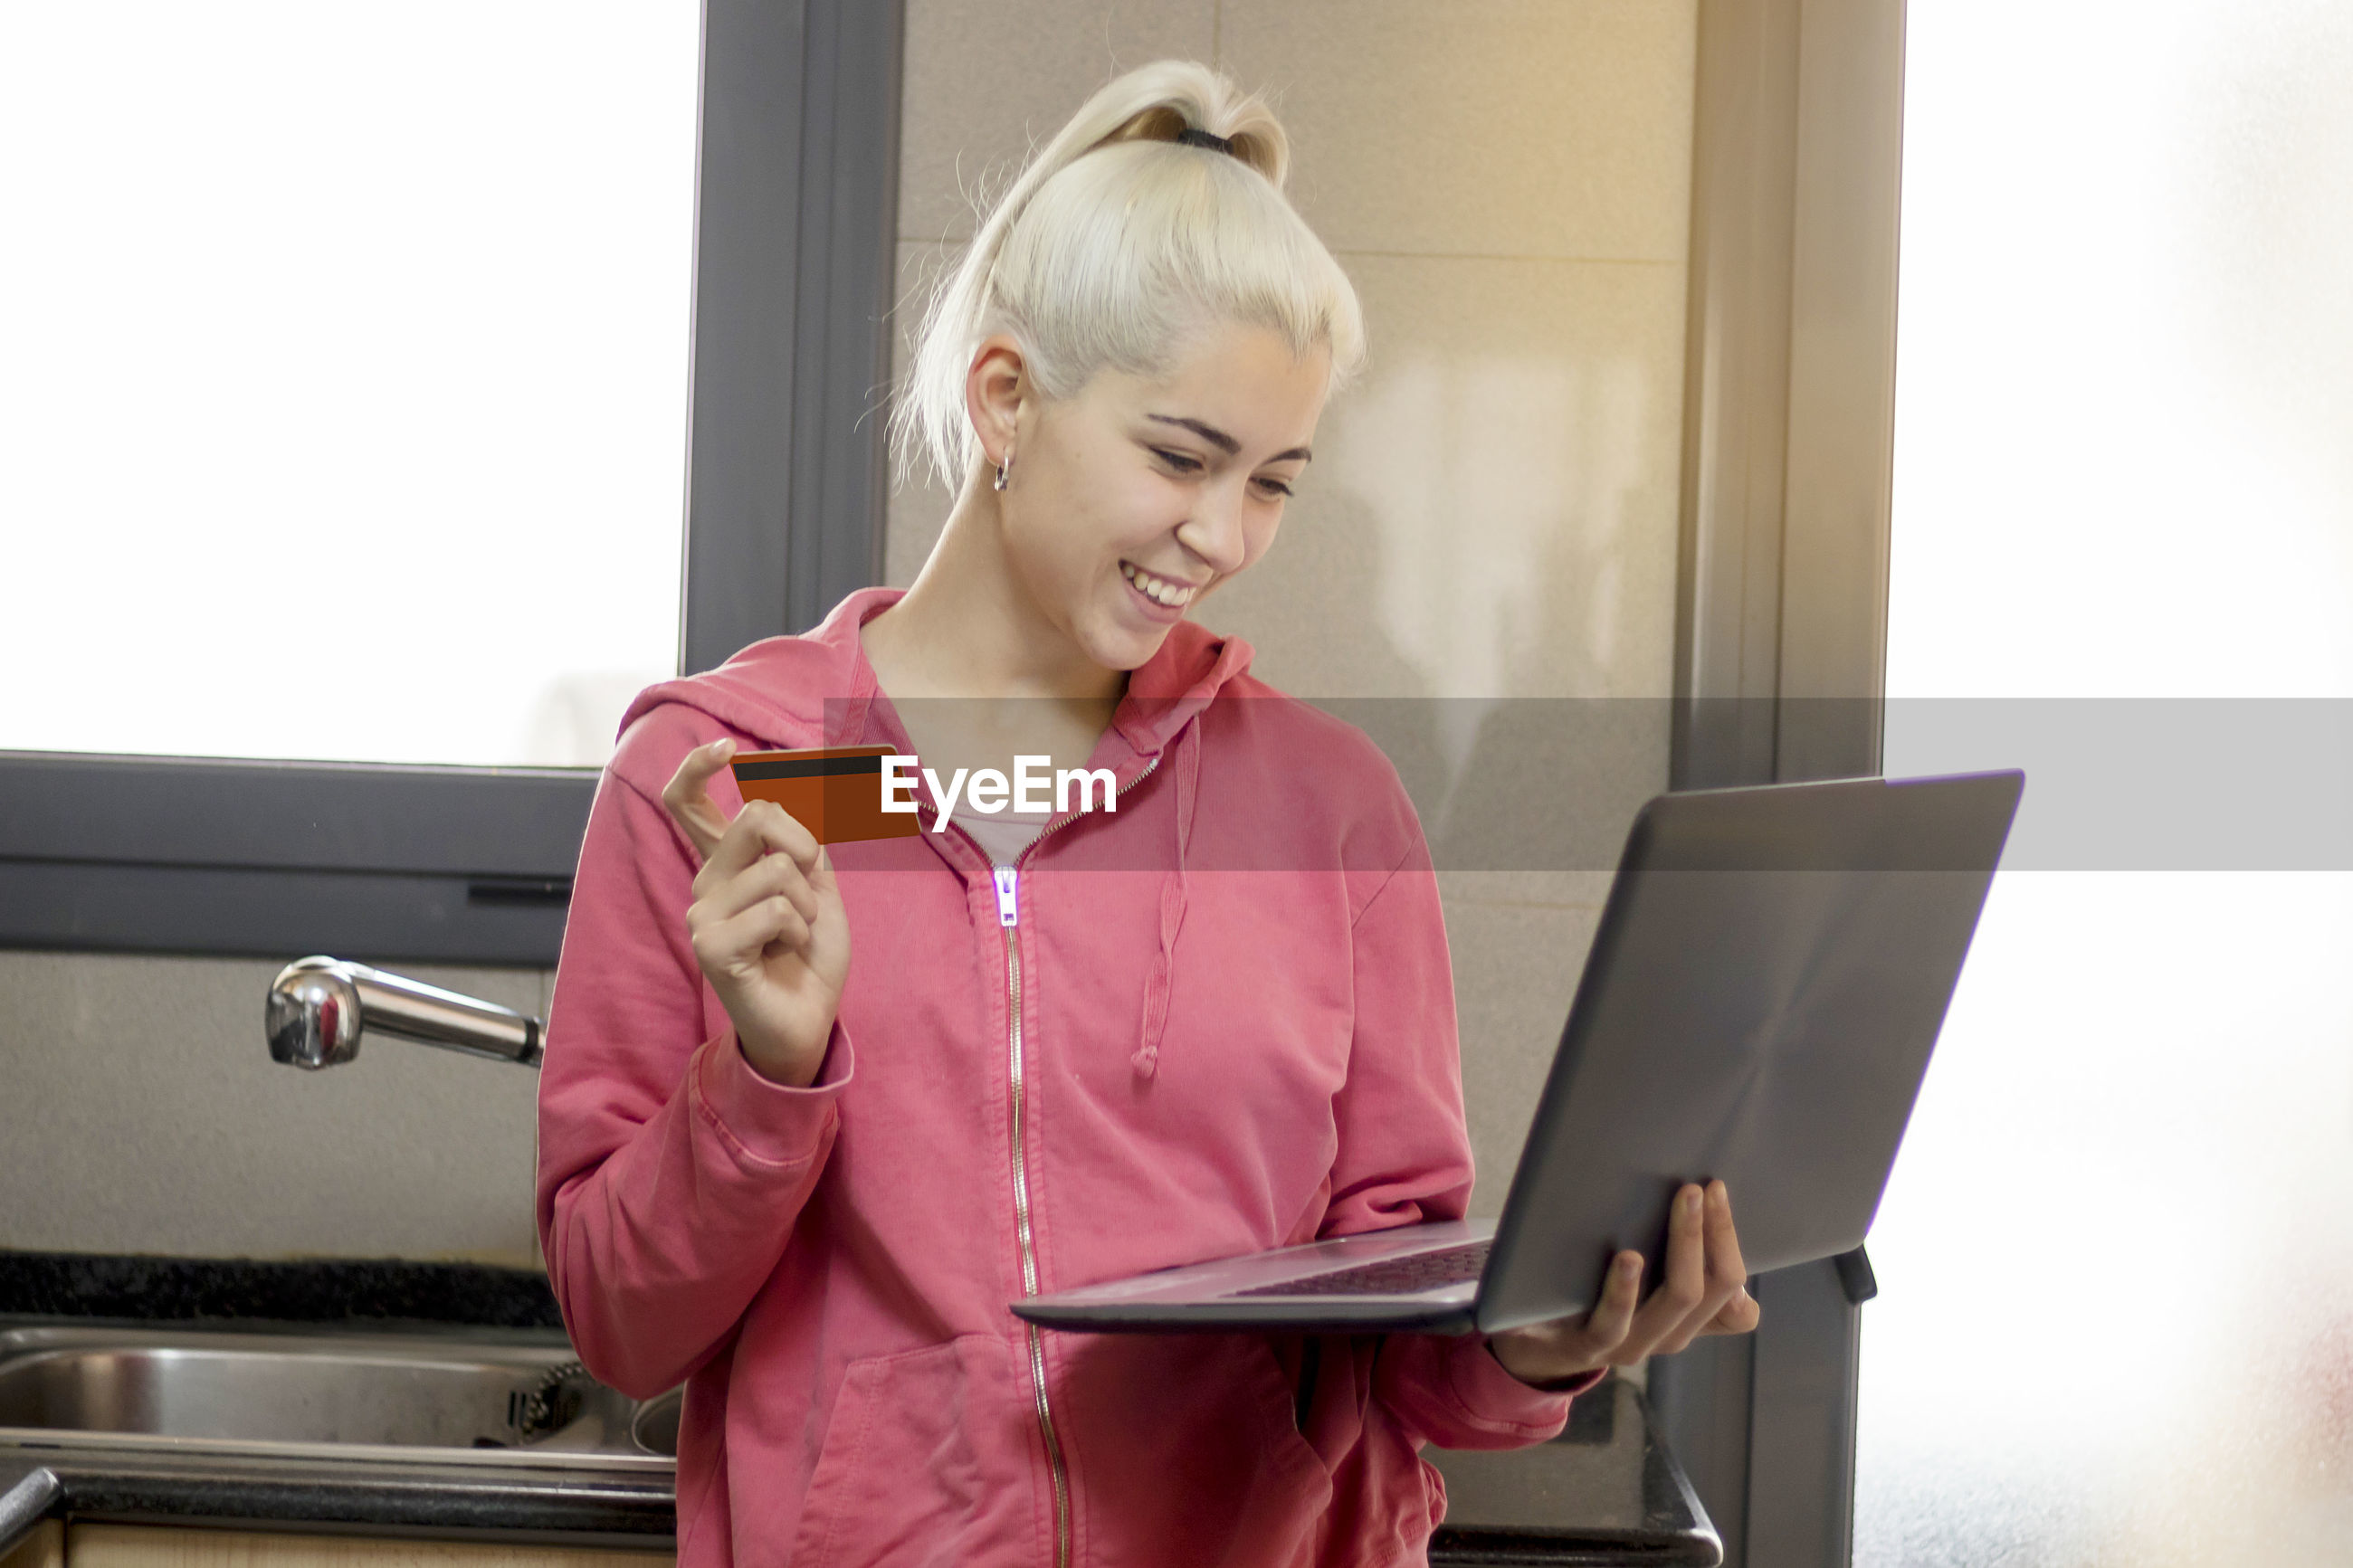 Smiling young woman holding credit card while using laptop at home